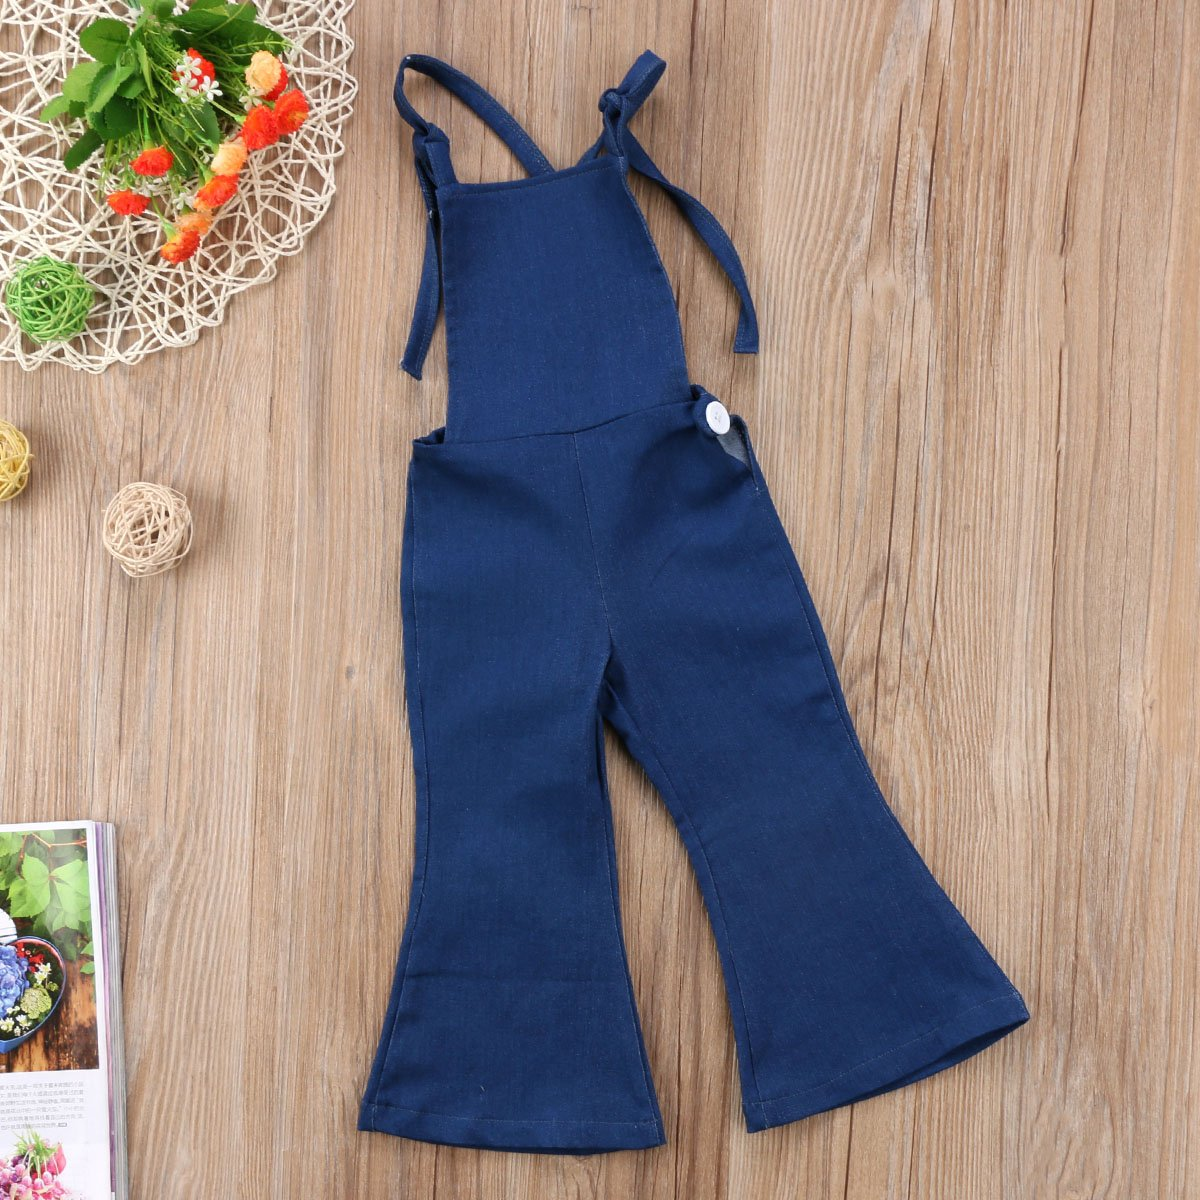 Pudcoco Baby Girls Little Kids Suspender Overall Flared Denim Jeans Jumpsuit Bell Elastic Blue Pants (Blue, 4-5T) by Pudcoco (Image #3)